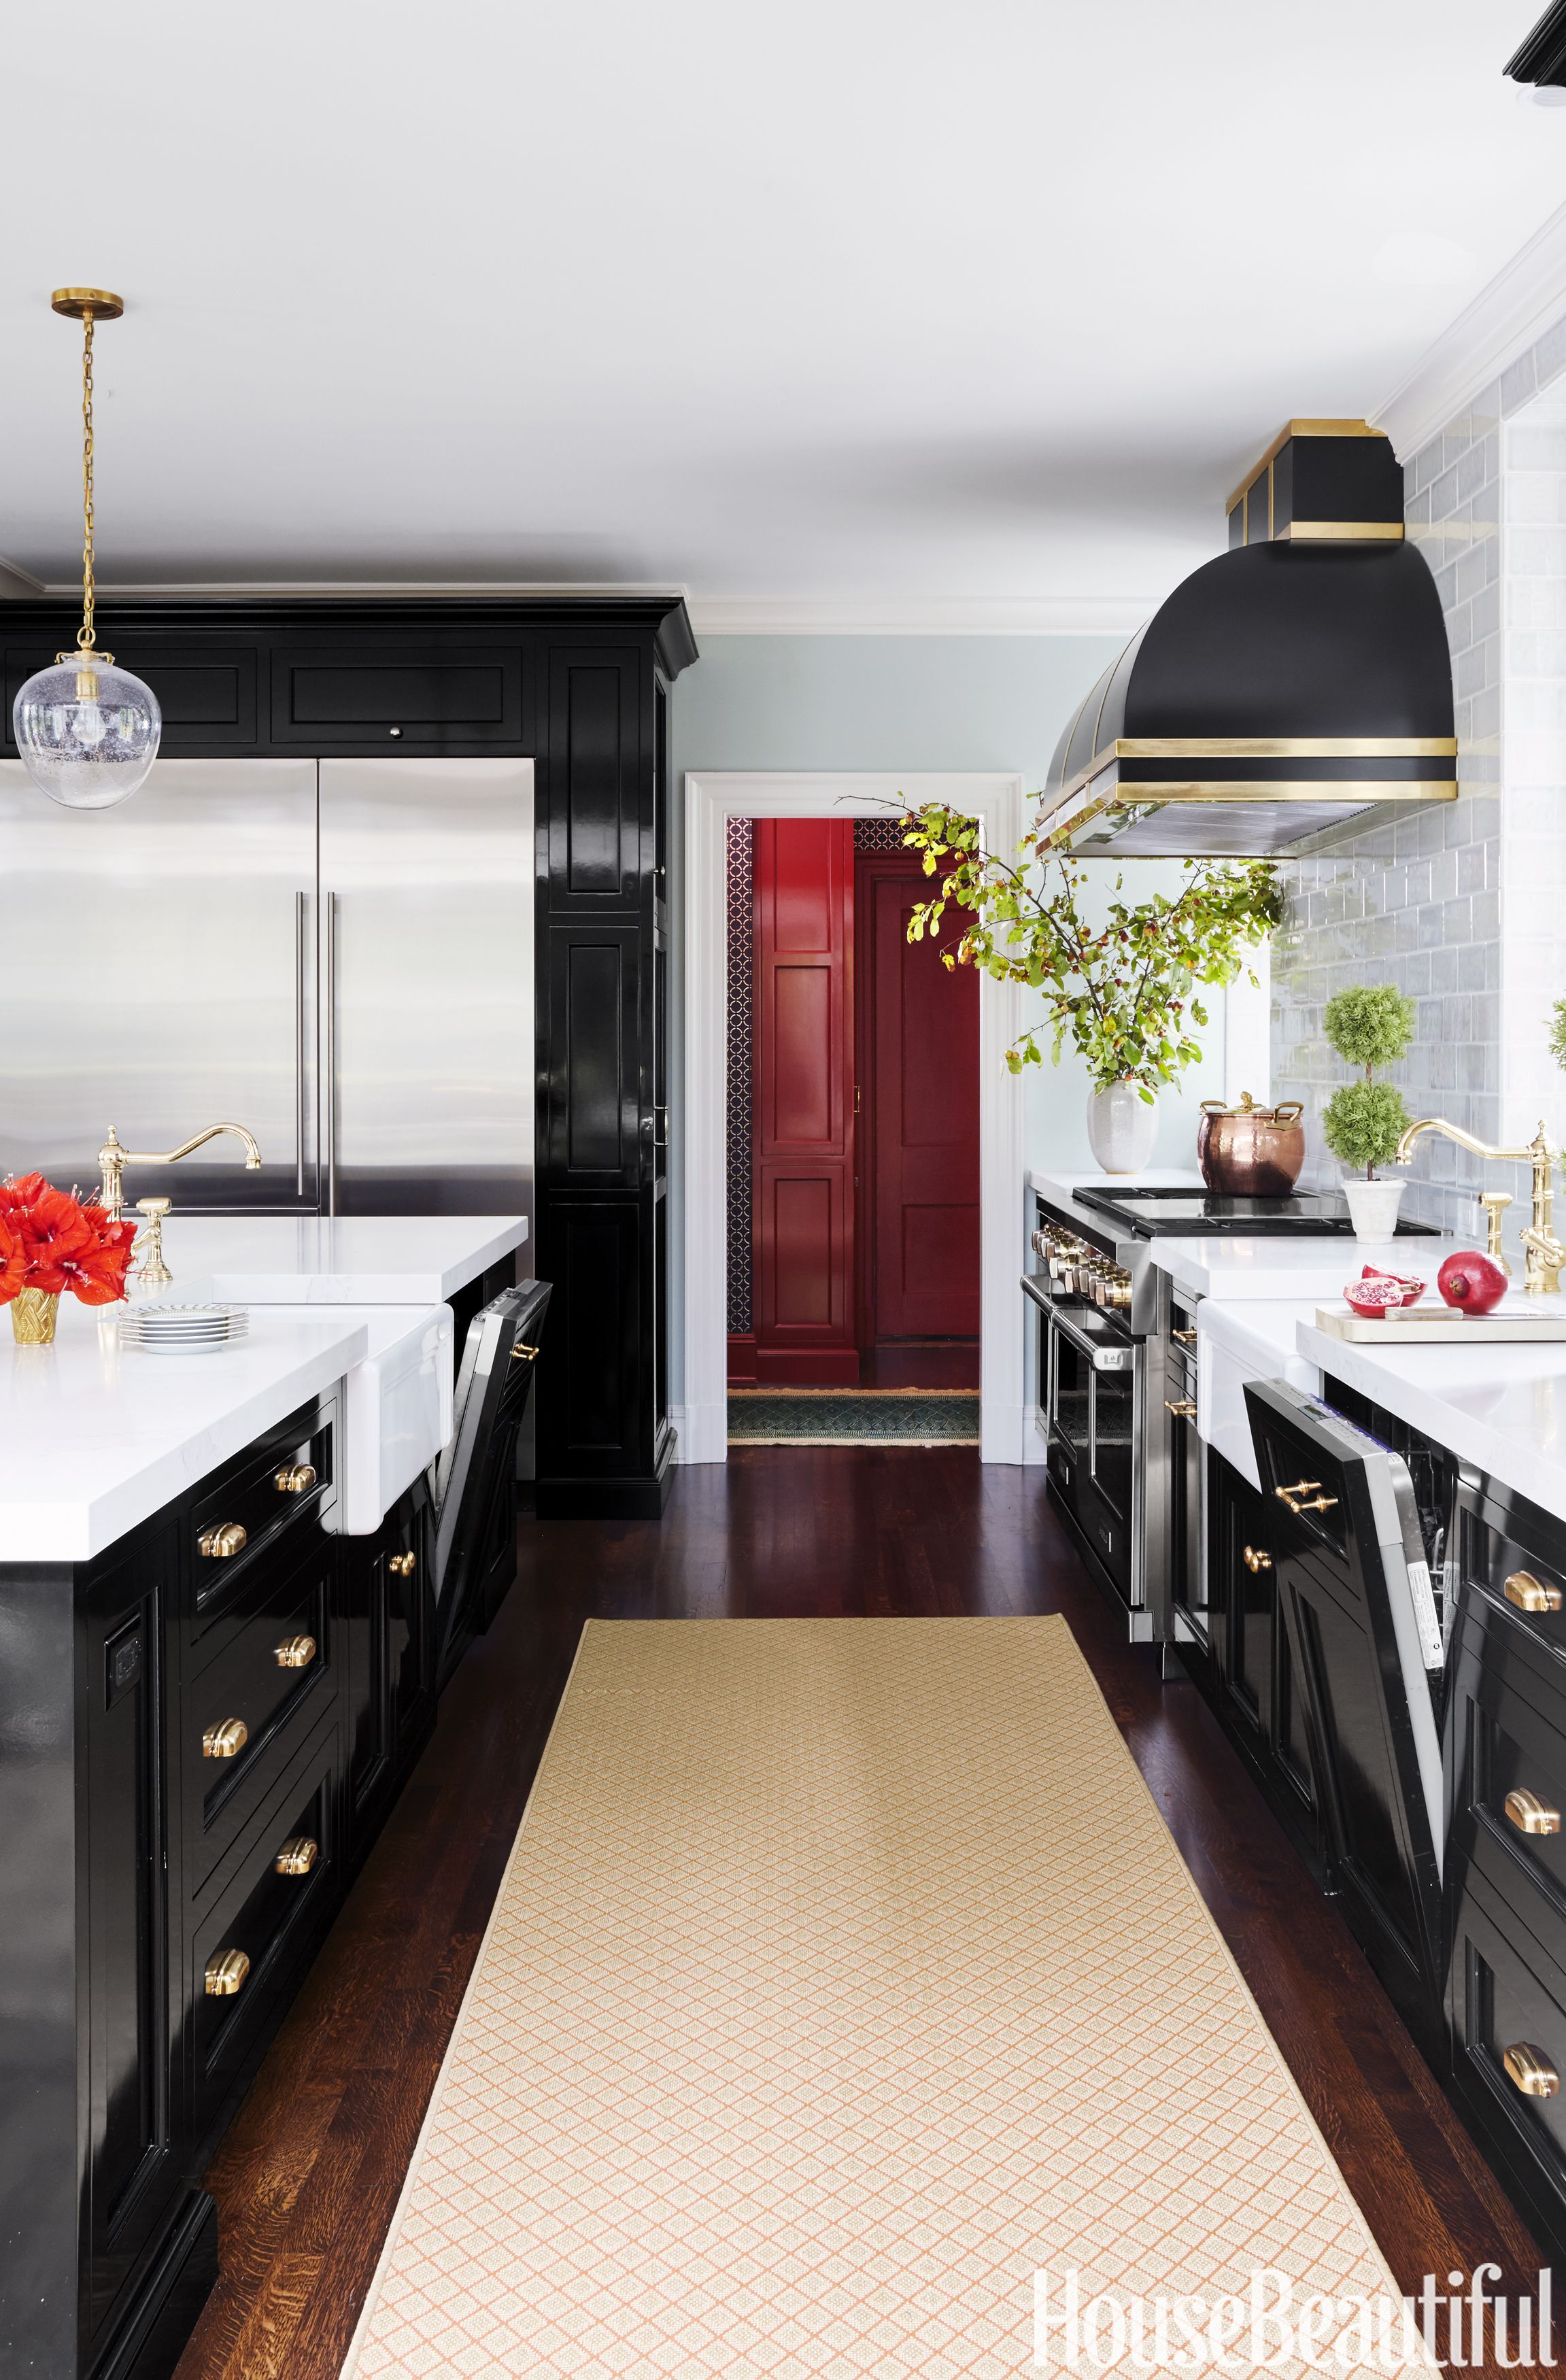 10 Black Kitchen Cabinet Ideas - Black Cabinetry and Cupboards